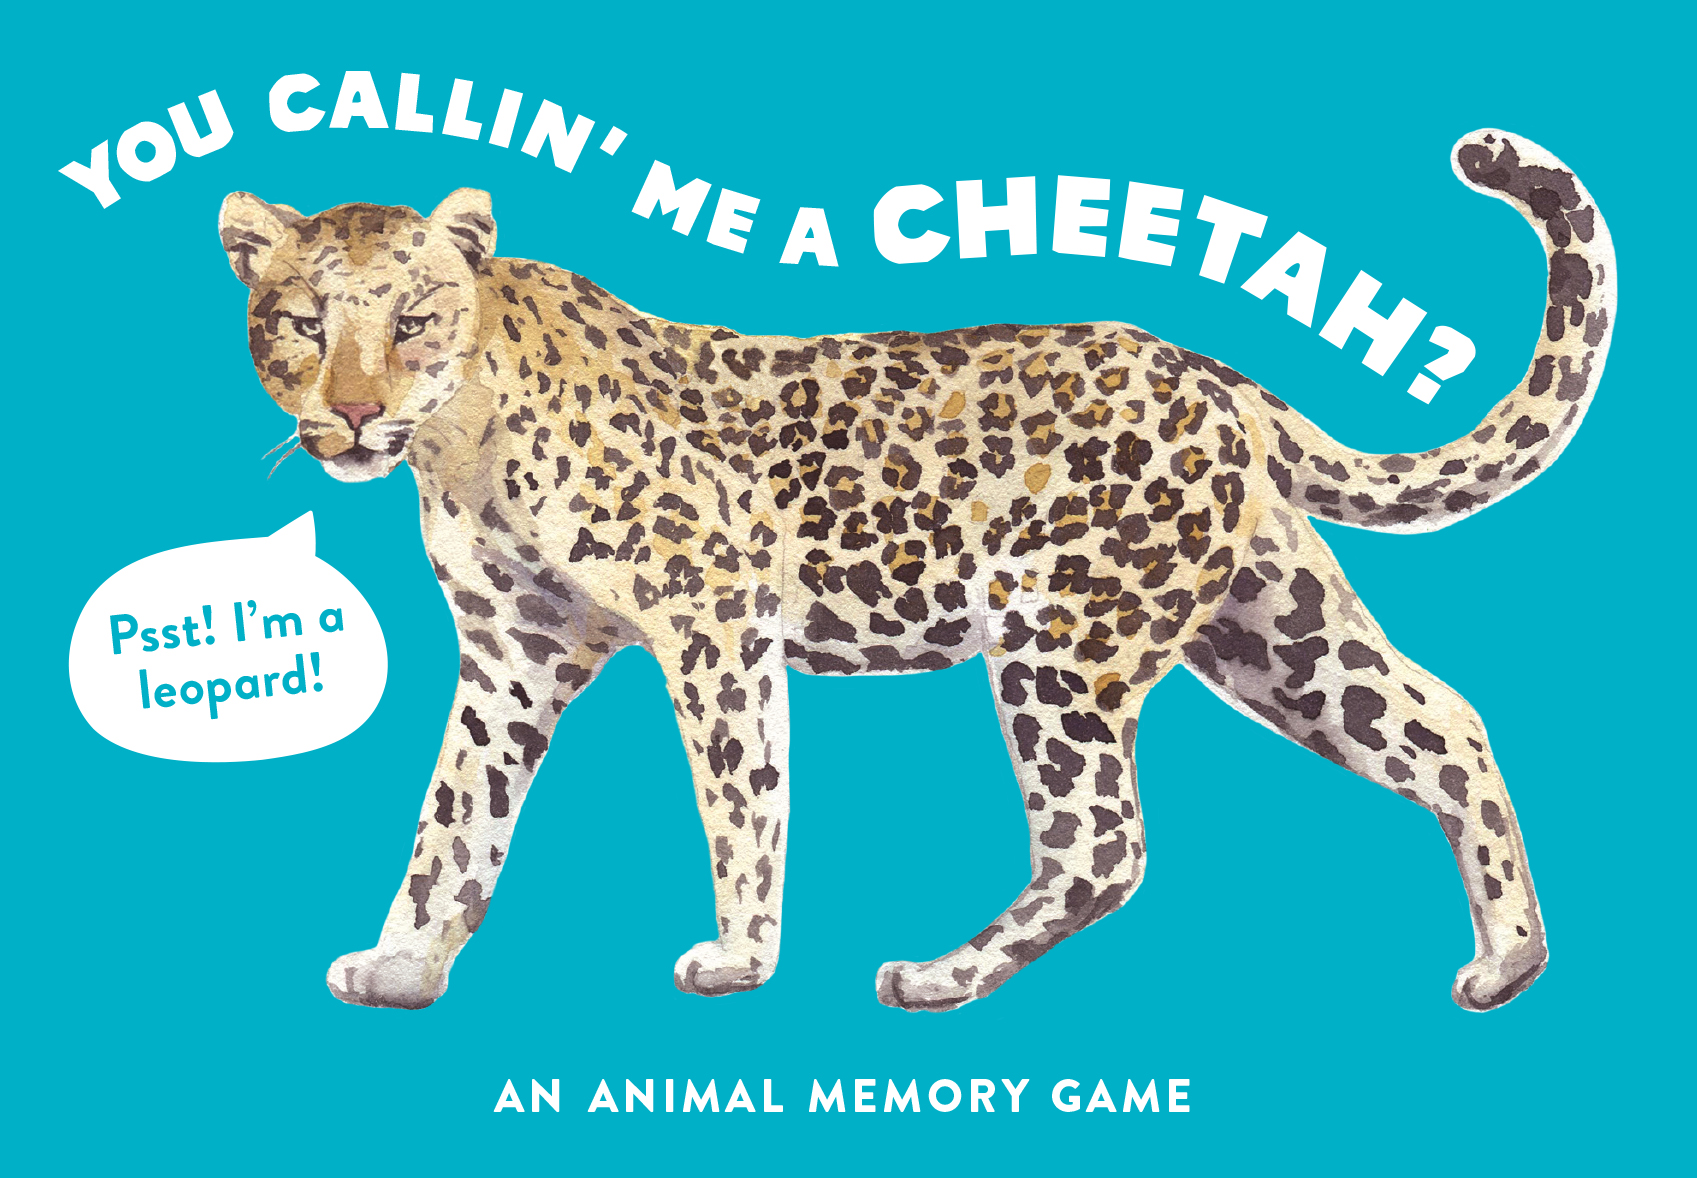 You Callin' Me a Cheetah? (Psst I'm a Leopard) - Product Thumbnail